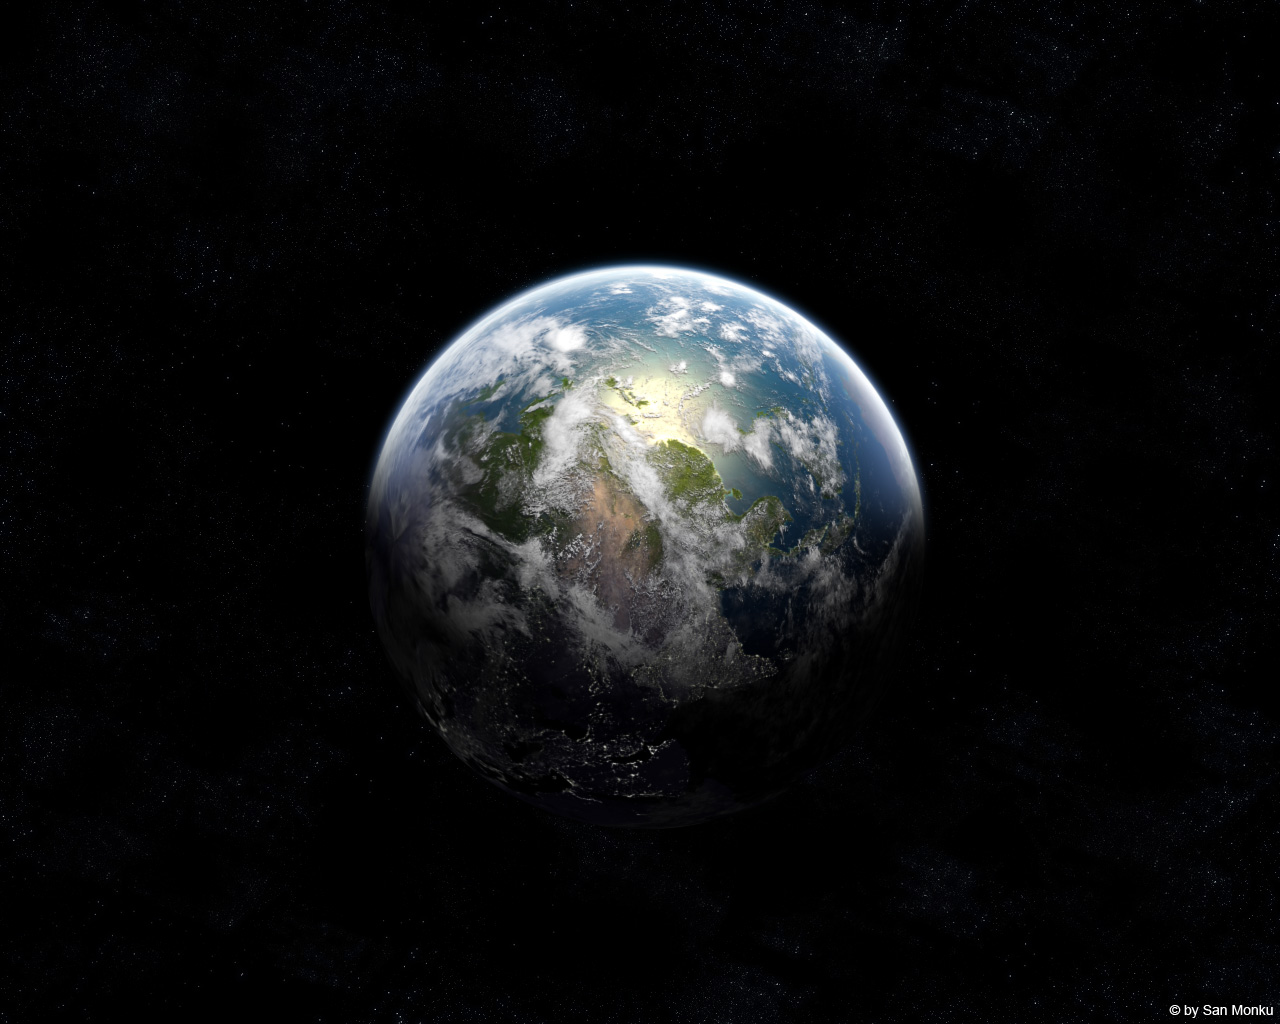 large pictures of planet earth - photo #10